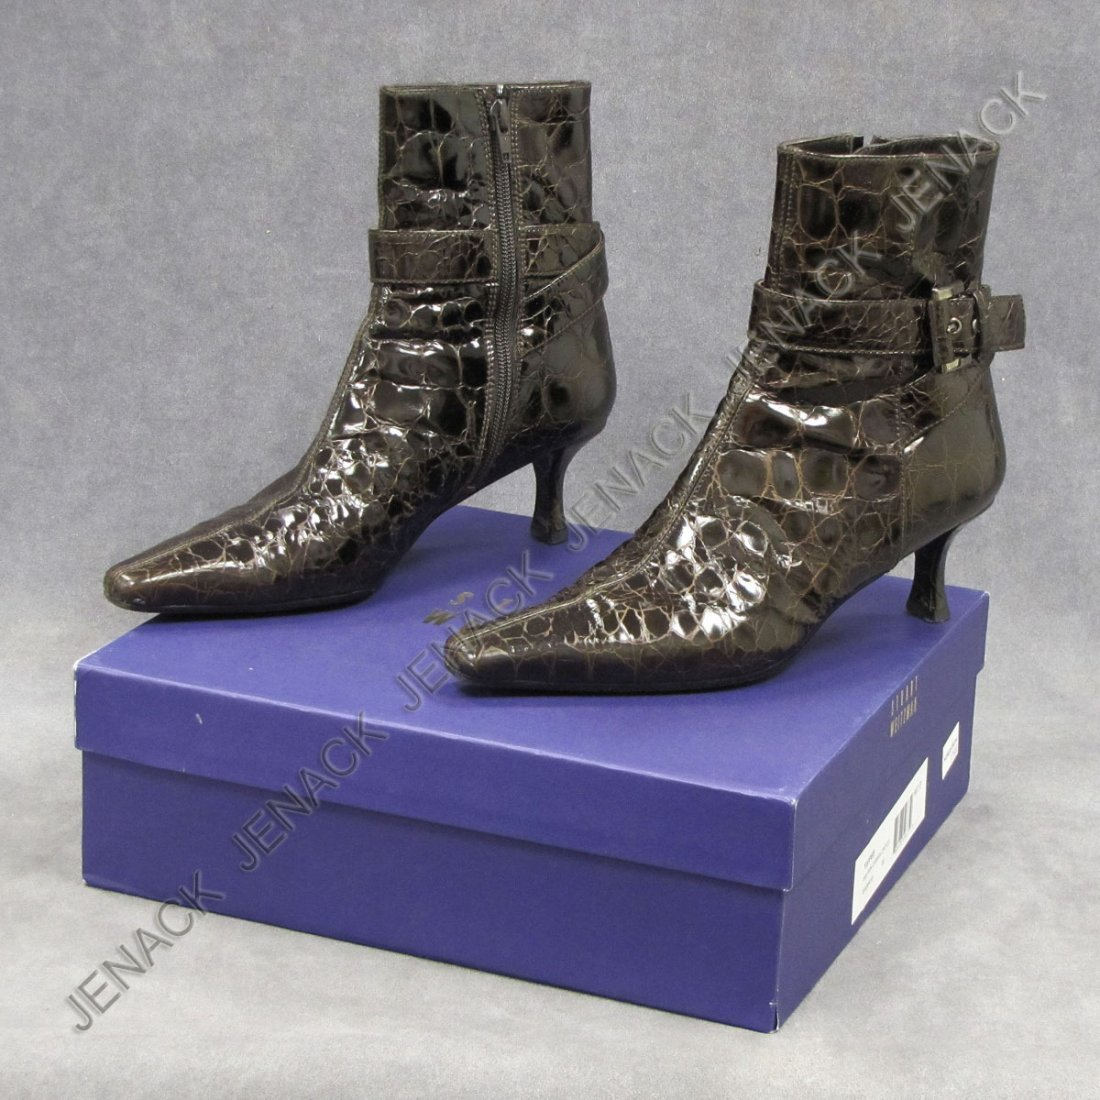 21: PAIR STUART WEITZMAN BROWN CARMAN CROCODILE SHOE